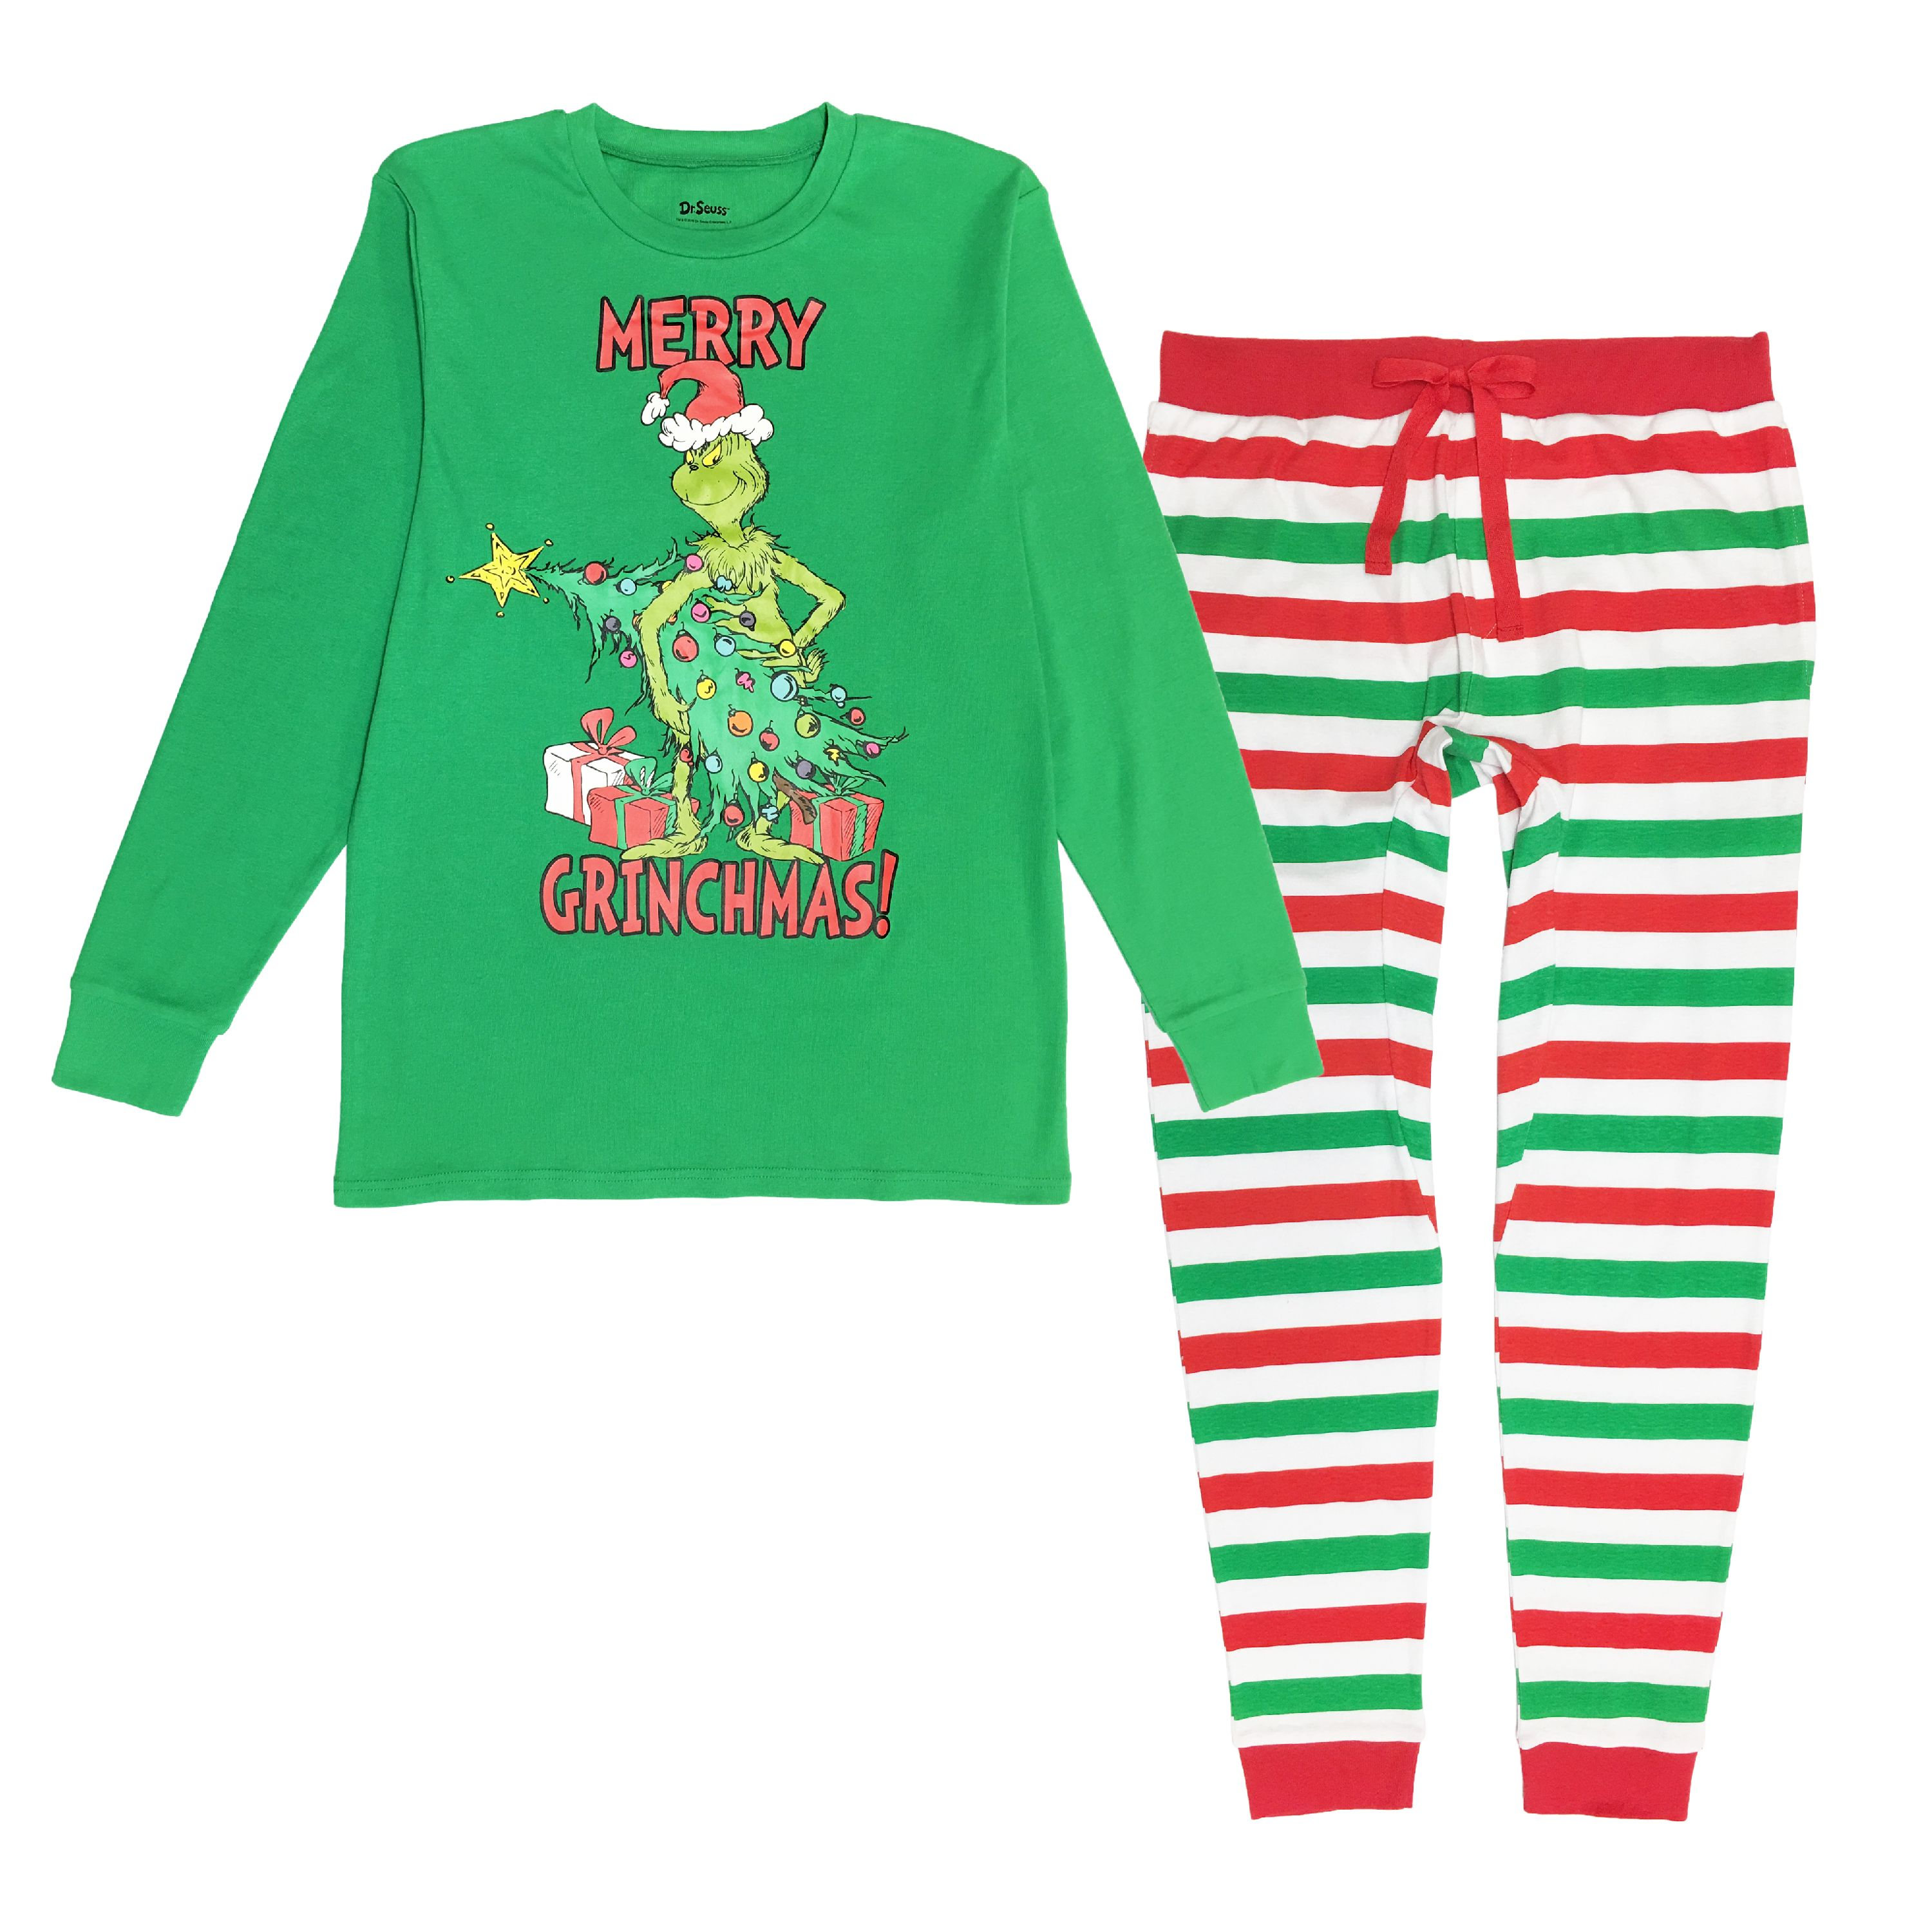 Matching Family Adult And Kids Pajama Set Outfits Seuss Grinch Merry Grinchmas Dr